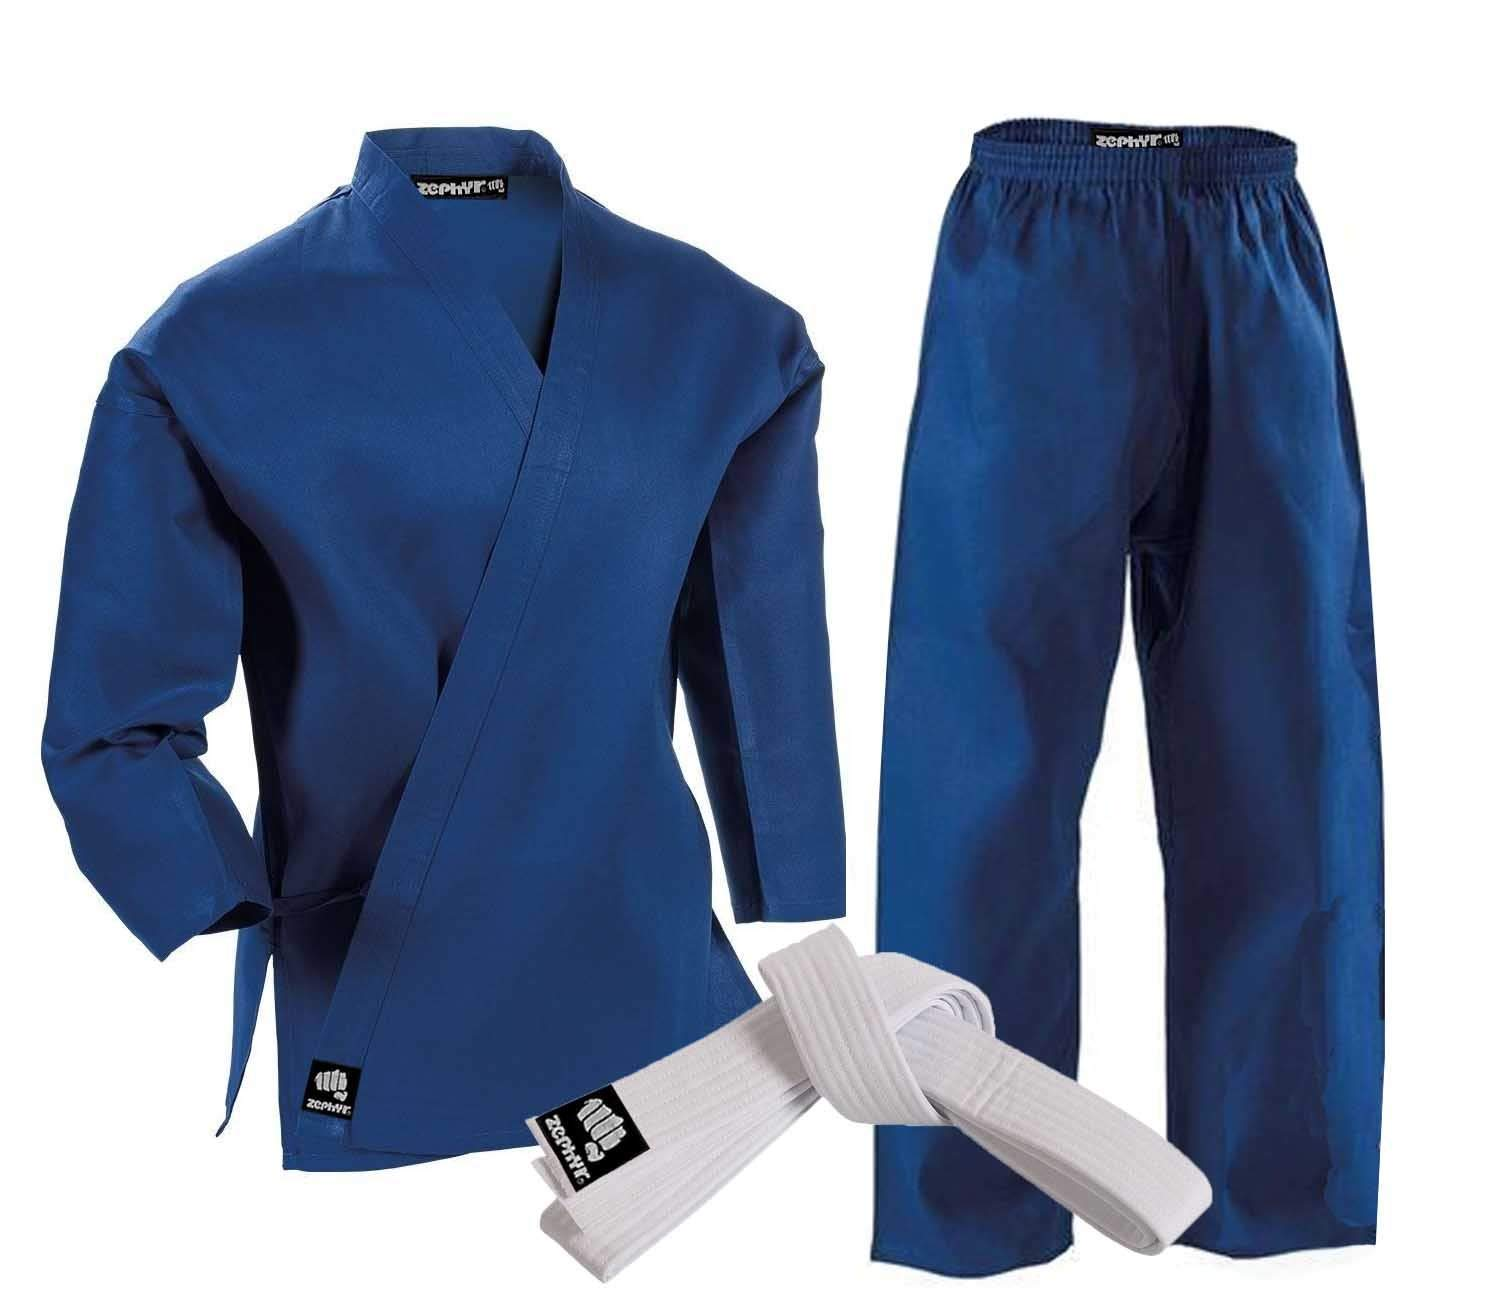 Zephyr Martial Arts Karate Gi Student Uniform with Belt - Blue - 1 by Zephyr Tactical